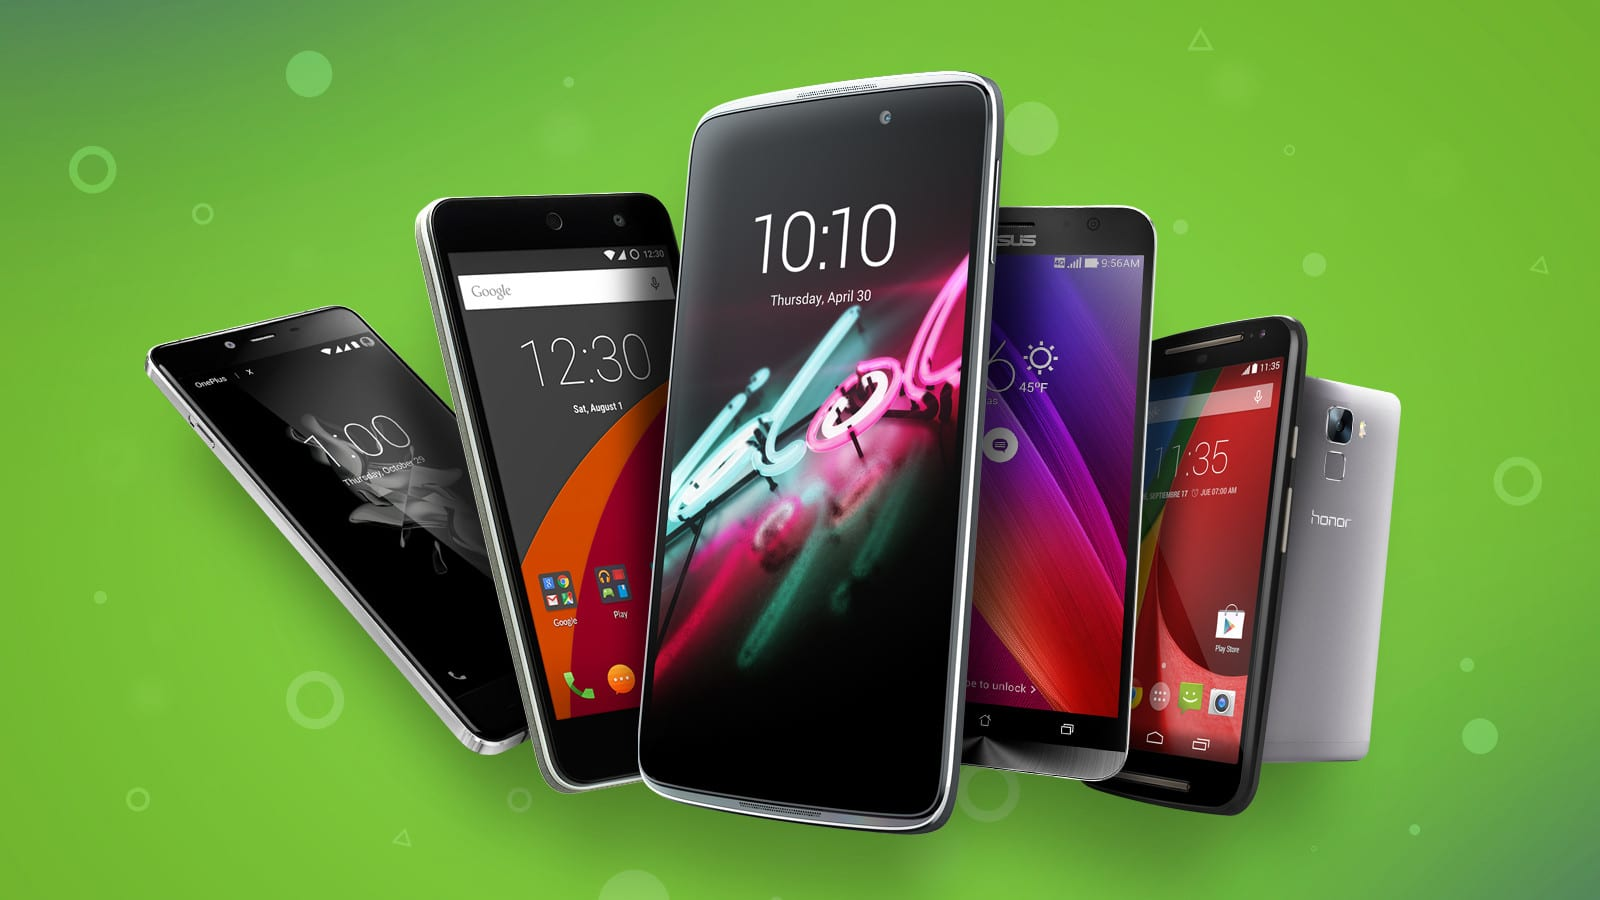 meilleurs smartphones android redac